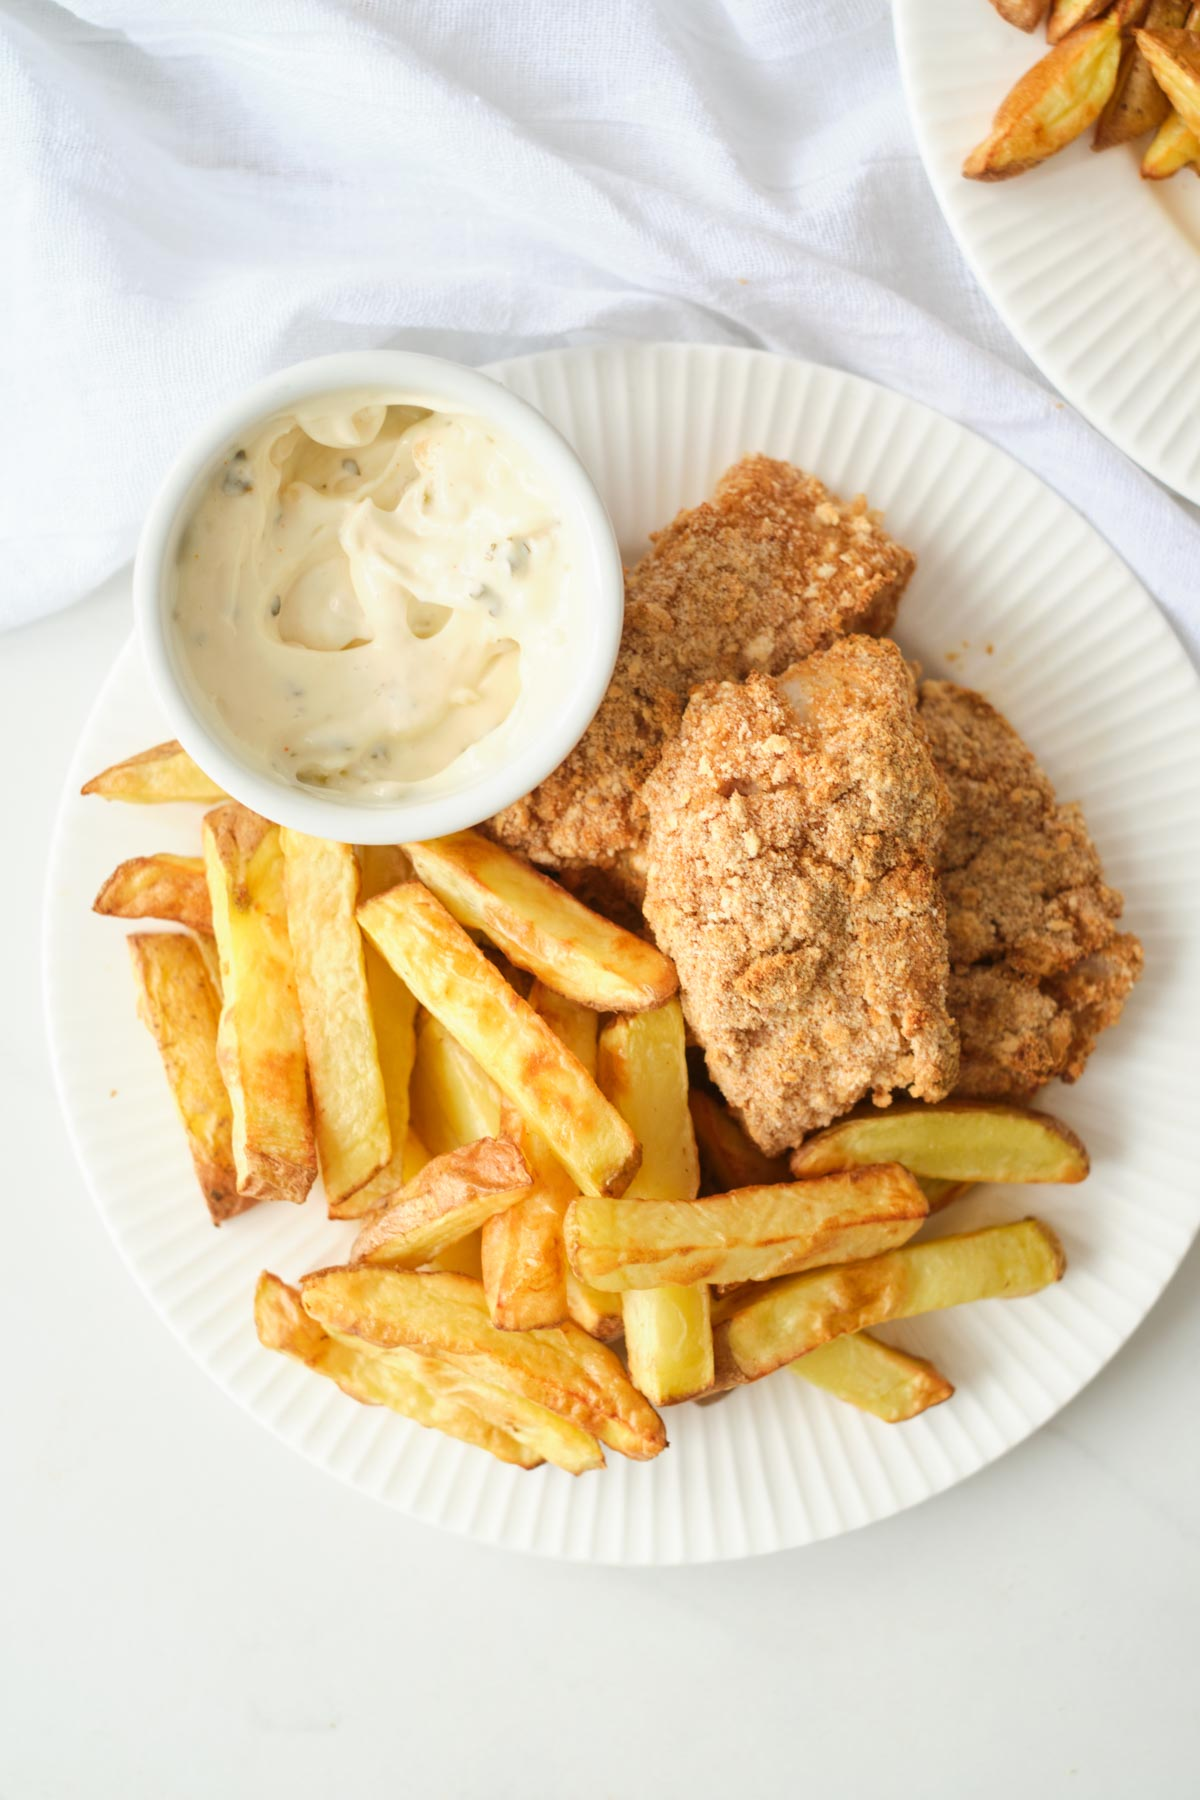 the completed air fryer fish and chips